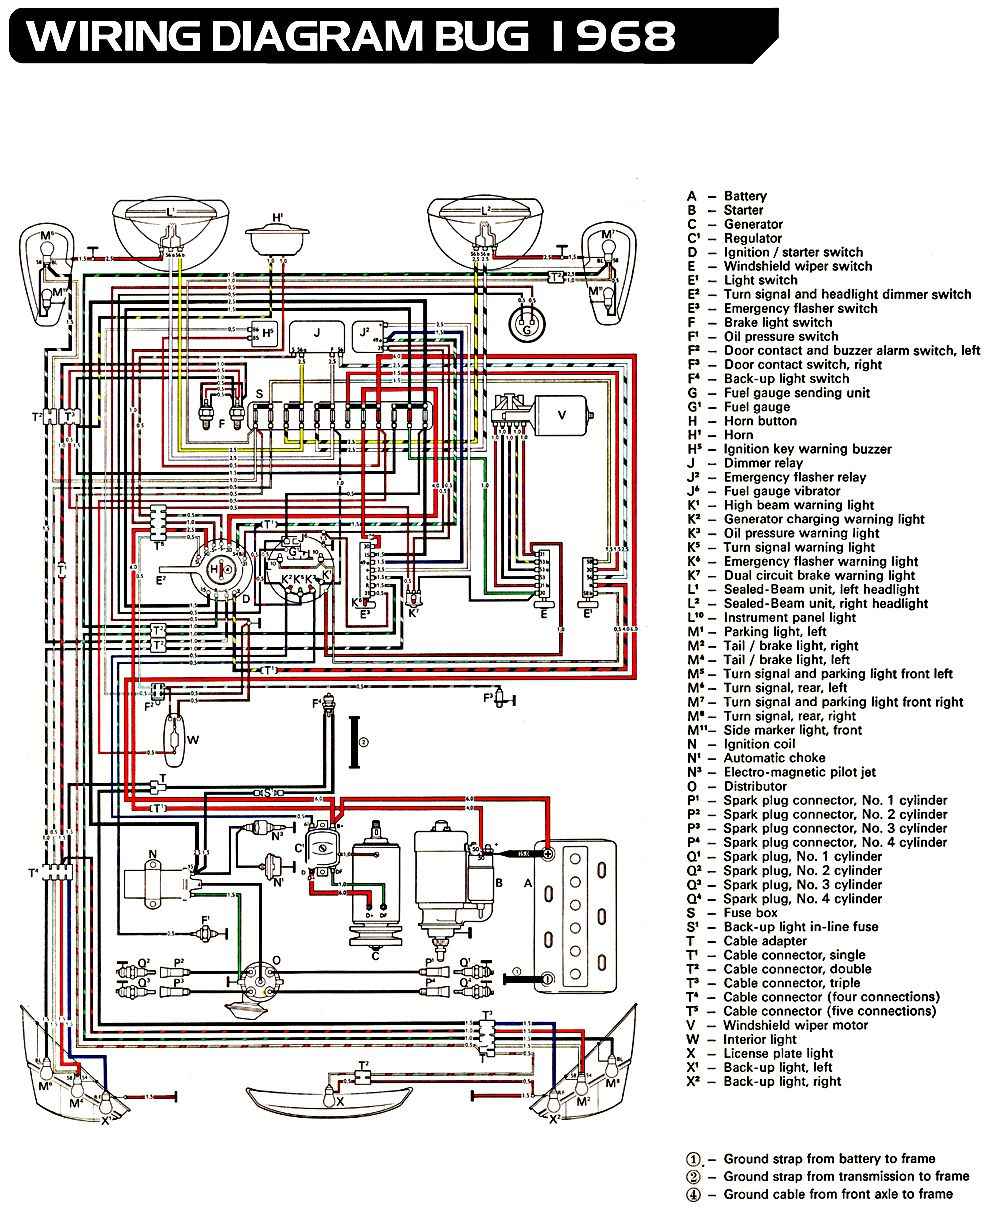 3a1908112d3826270ed5e3be362292bf vw bug ignition wiring diagram 73 vw wiring diagram free vw beetle diagrams at virtualis.co